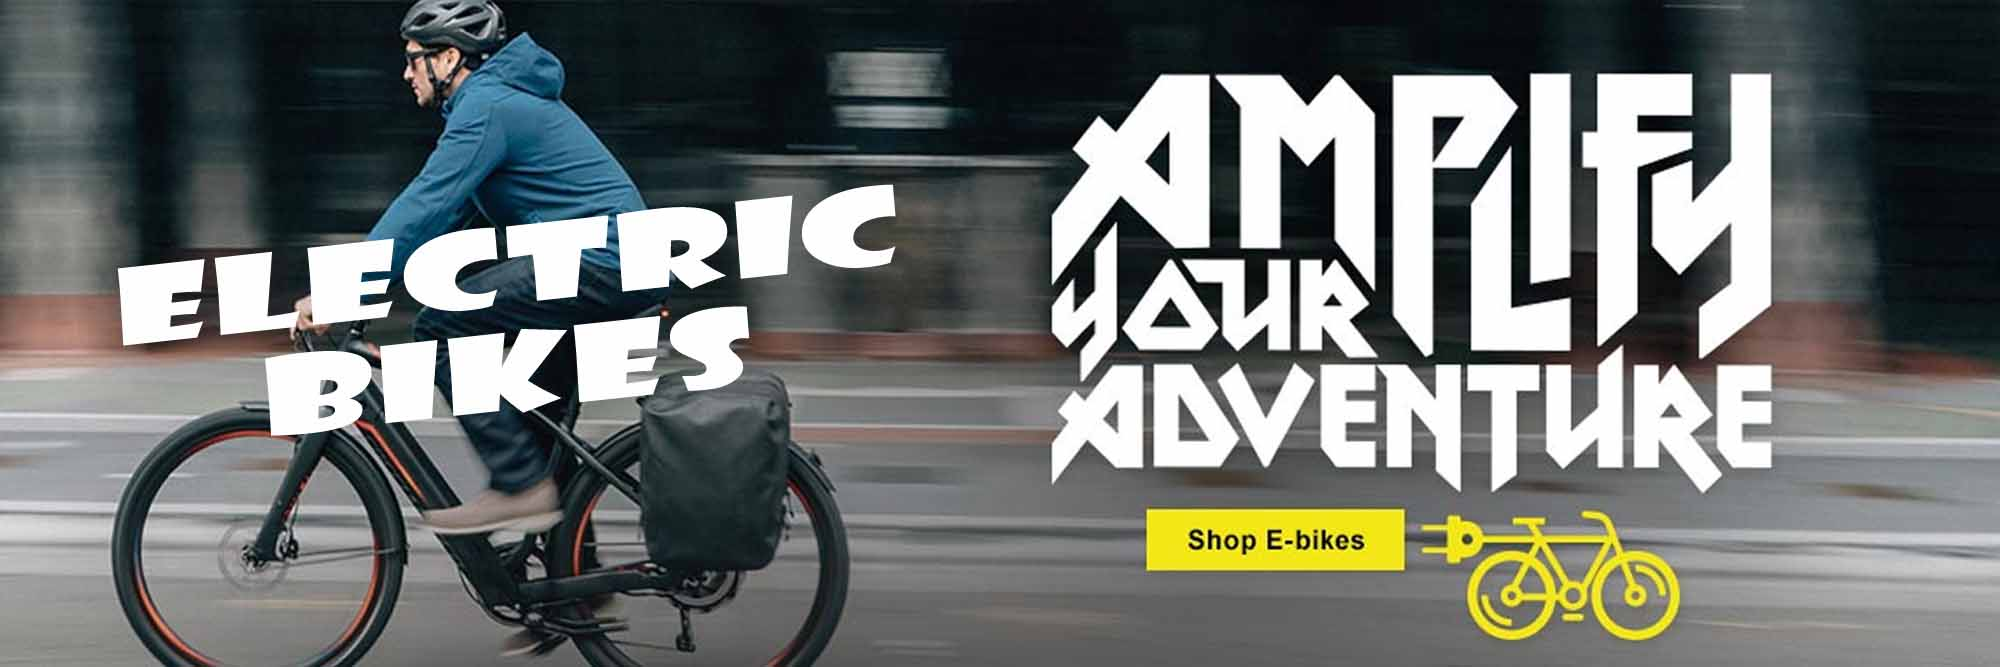 Shop Electric Bikes at Kozy's Cyclery